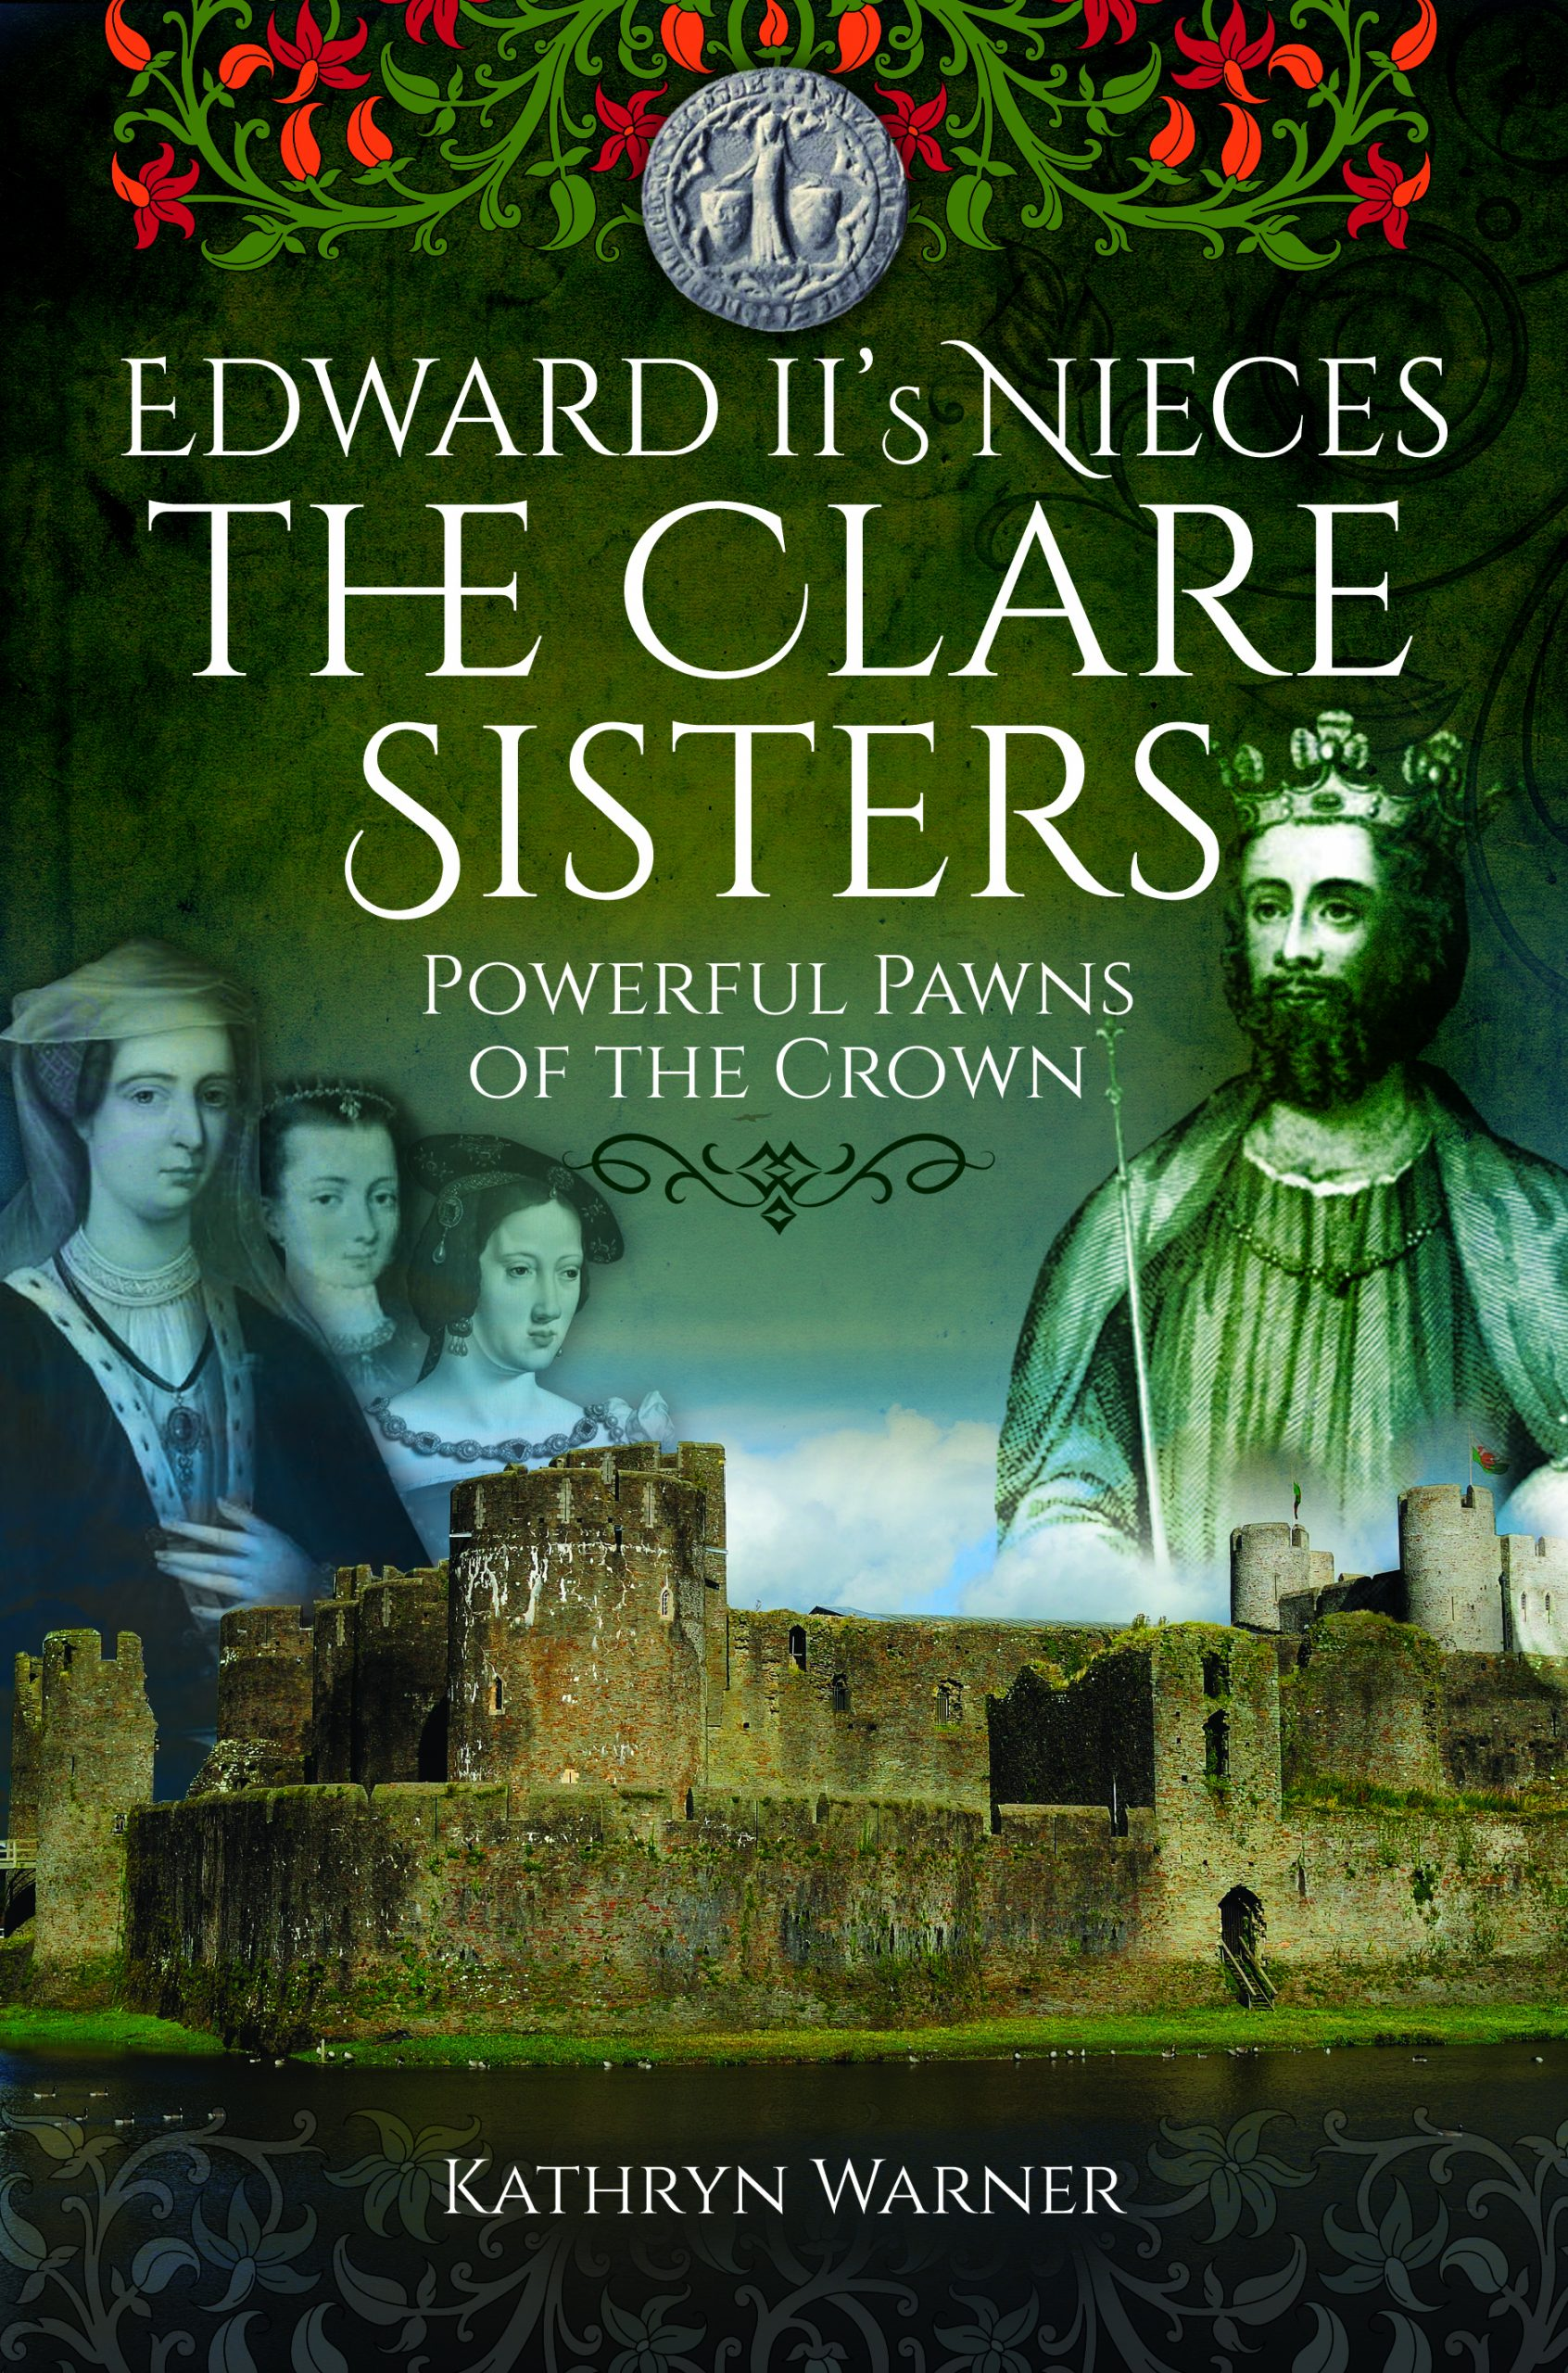 Edward II's Nieces The Clare Sisters cover